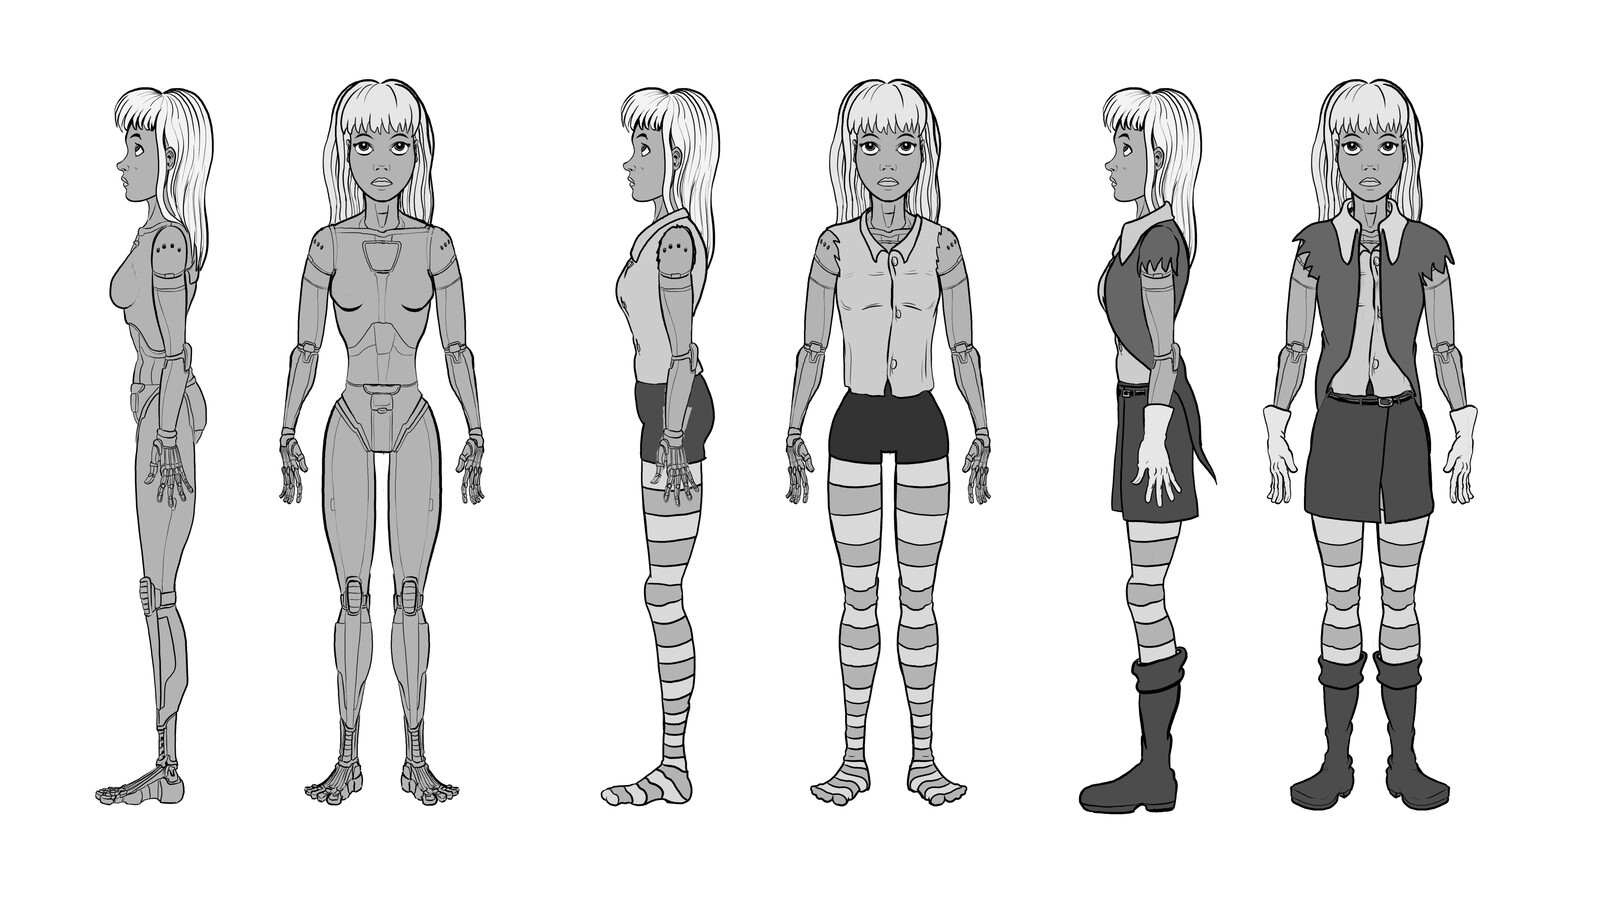 Lili - modeling reference drawings I created for myself. Since player was supposed to select custom clothing for the character, I had to design it with all the cloth layers.